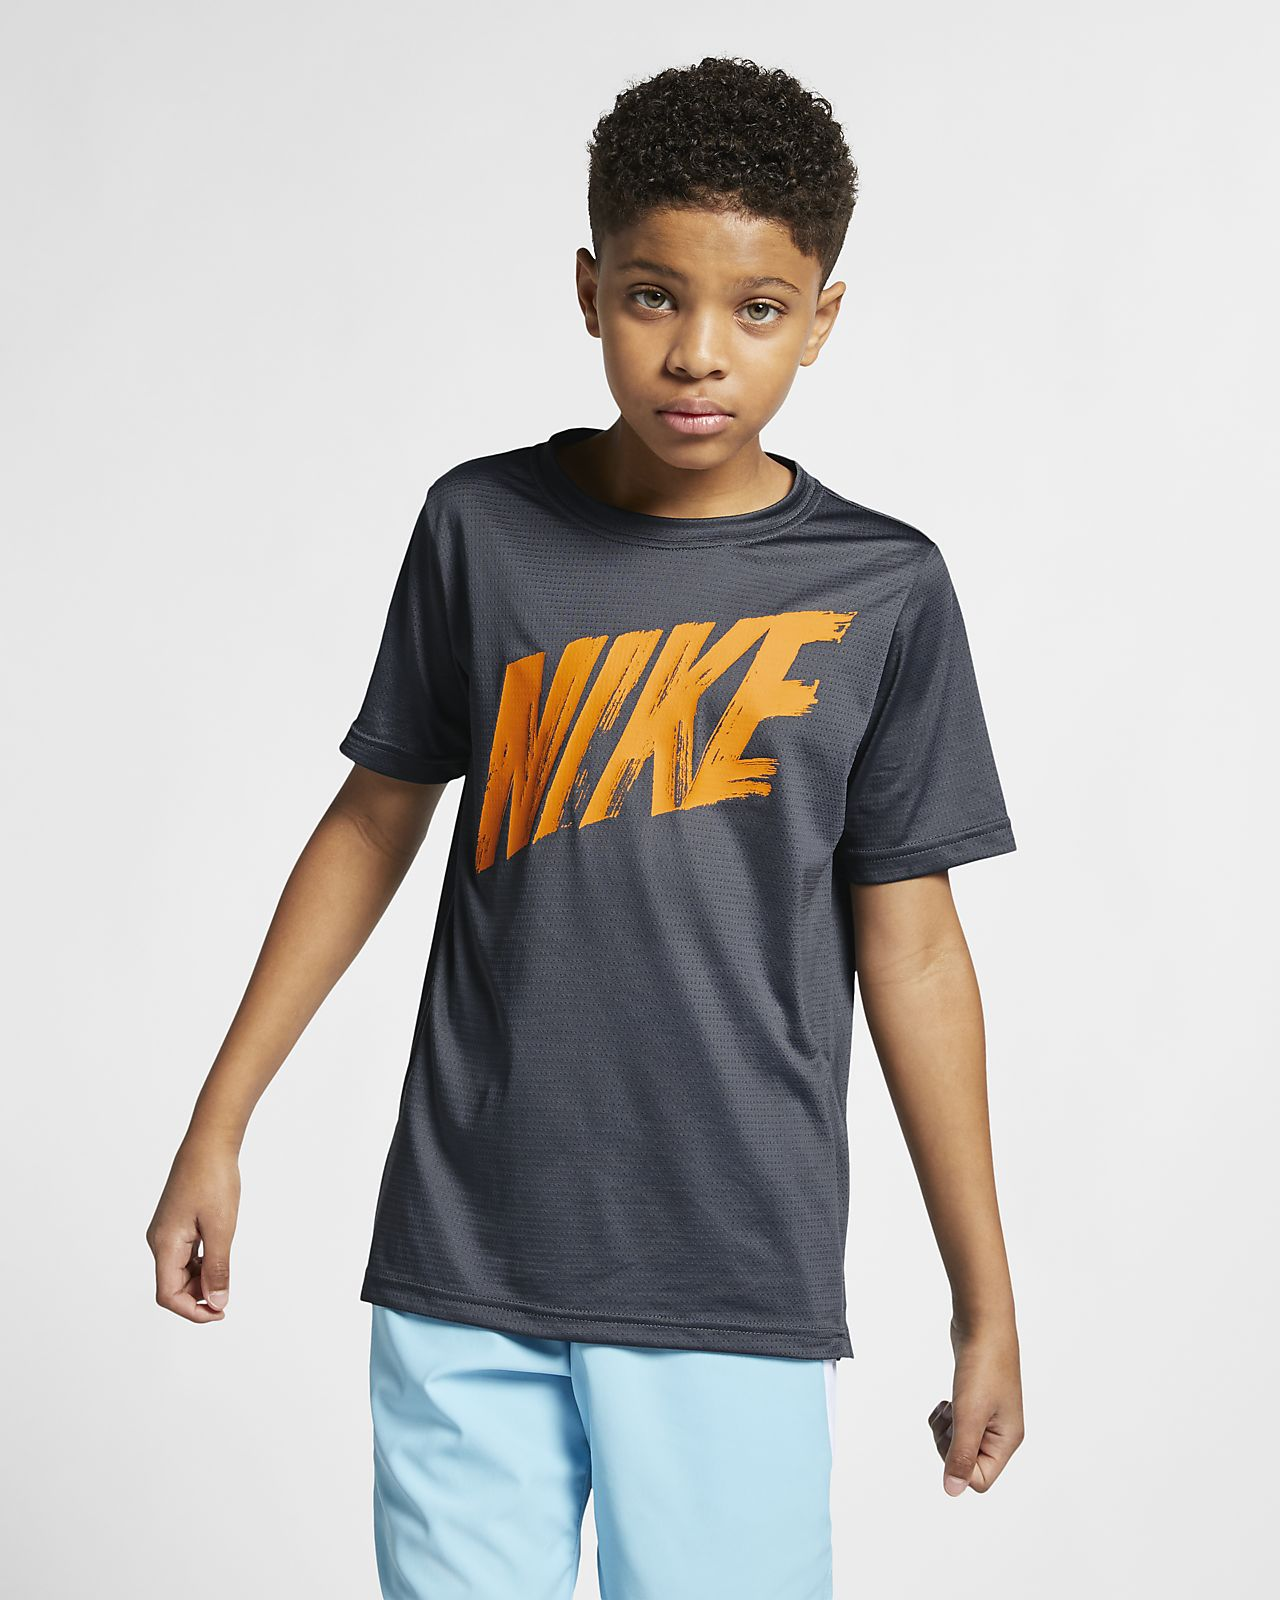 sale retailer 17e40 886a1 ... Nike Dri-FIT Older Kids  (Boys ) Short-Sleeve Training Top